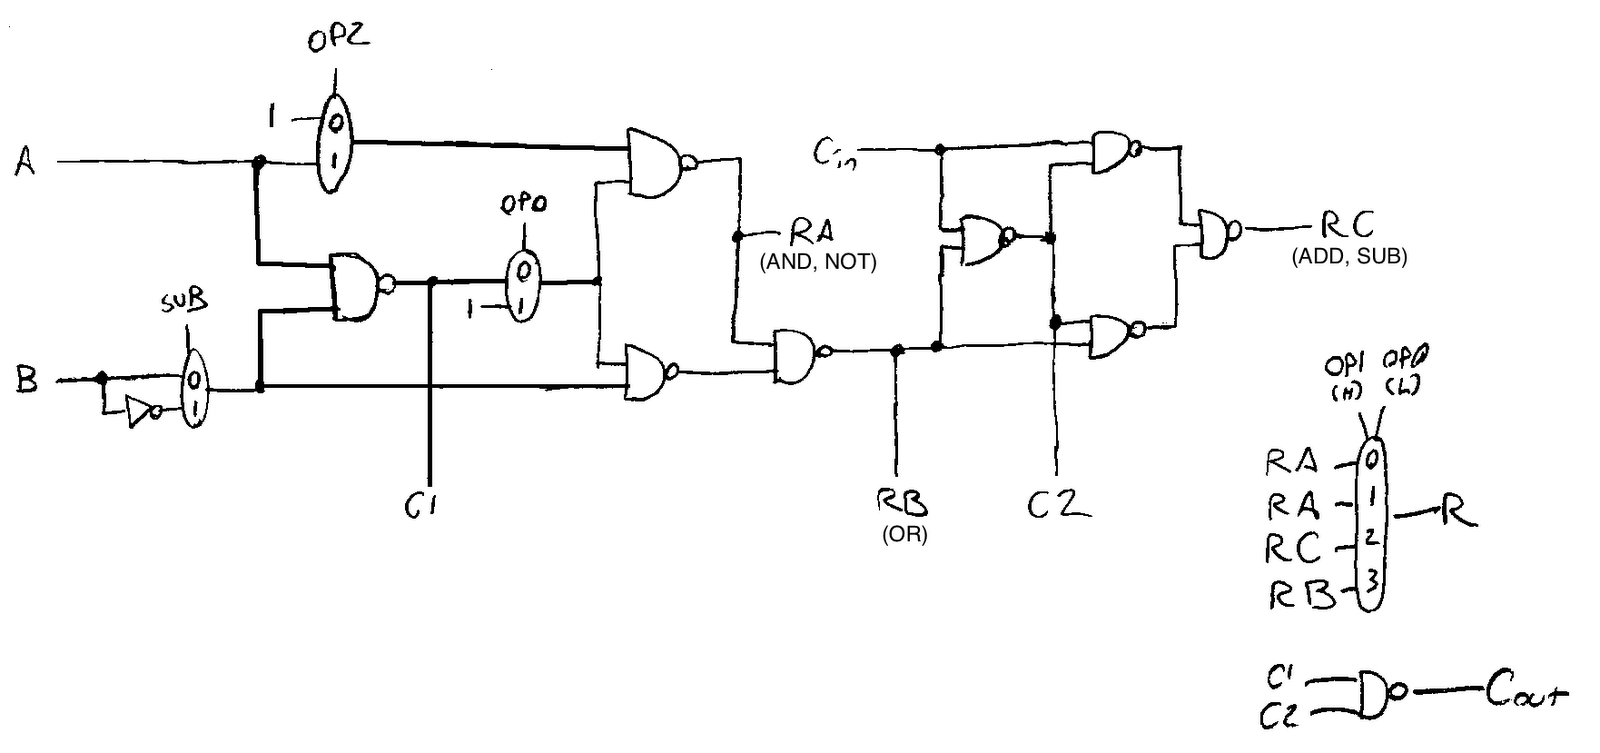 small resolution of the circuit for a typical bit is best described as a modified full adder these modifications which are necessary to support five operations add sub